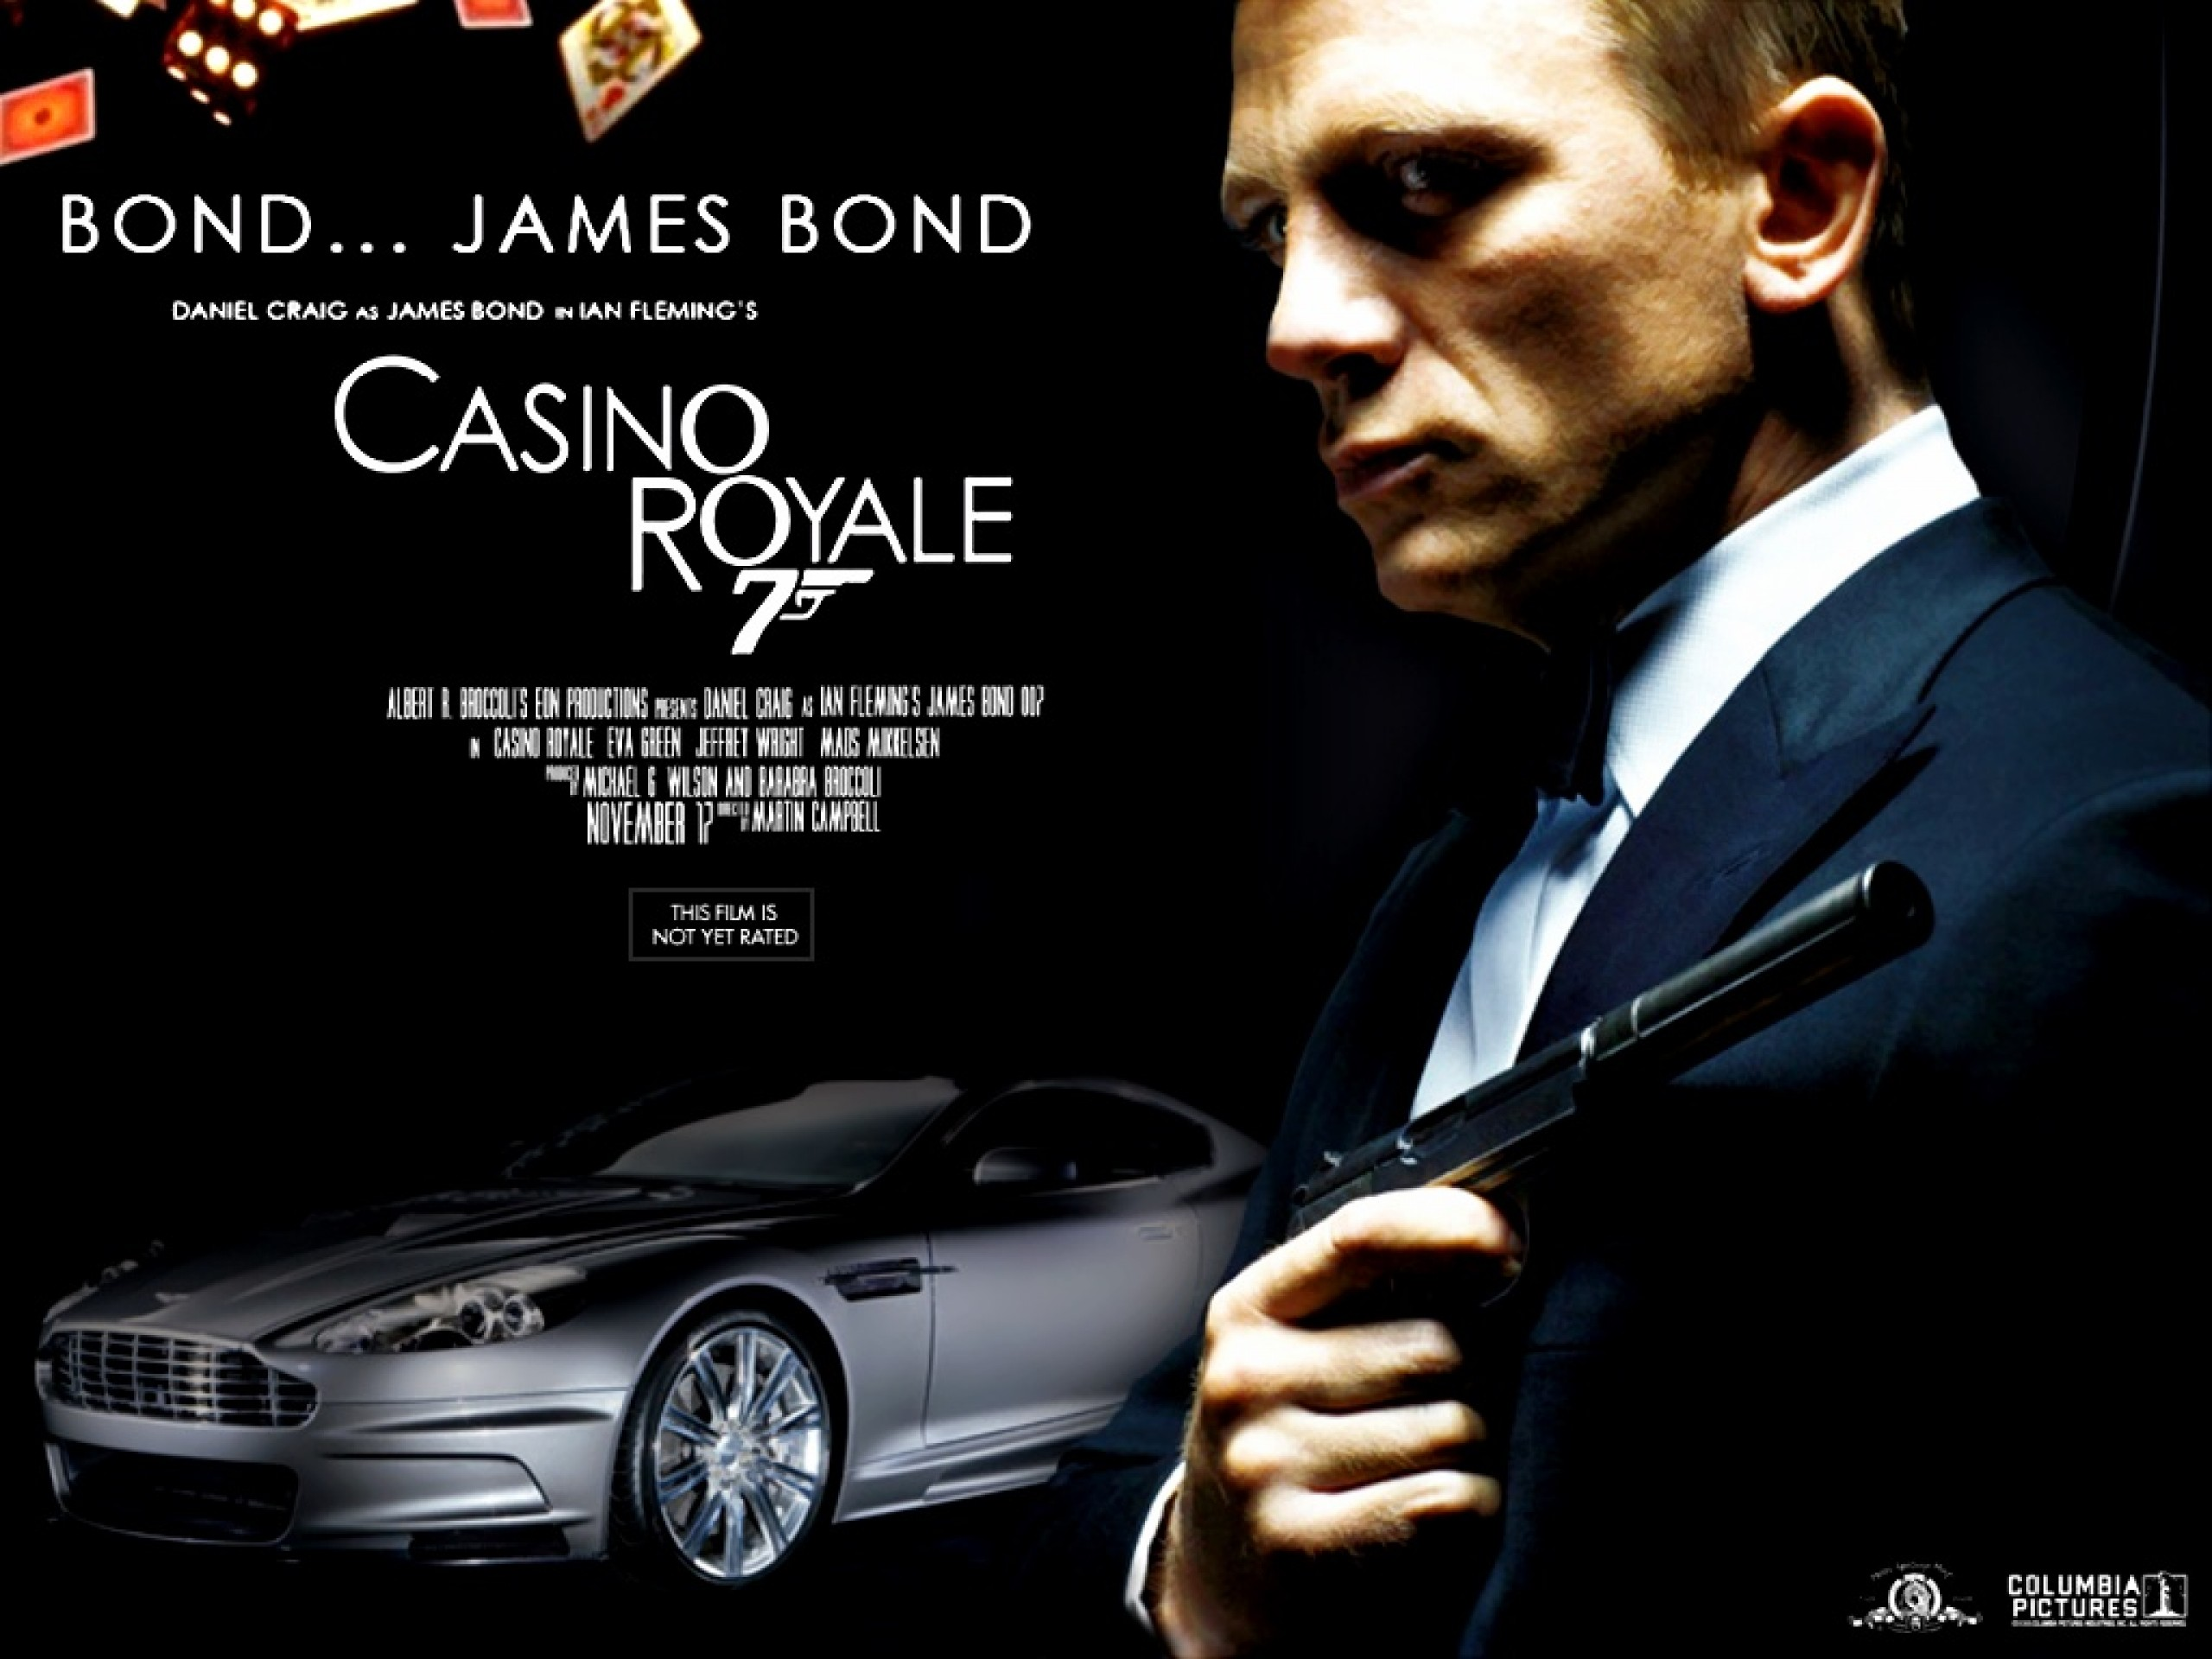 james bond casino royale full movie online games onl